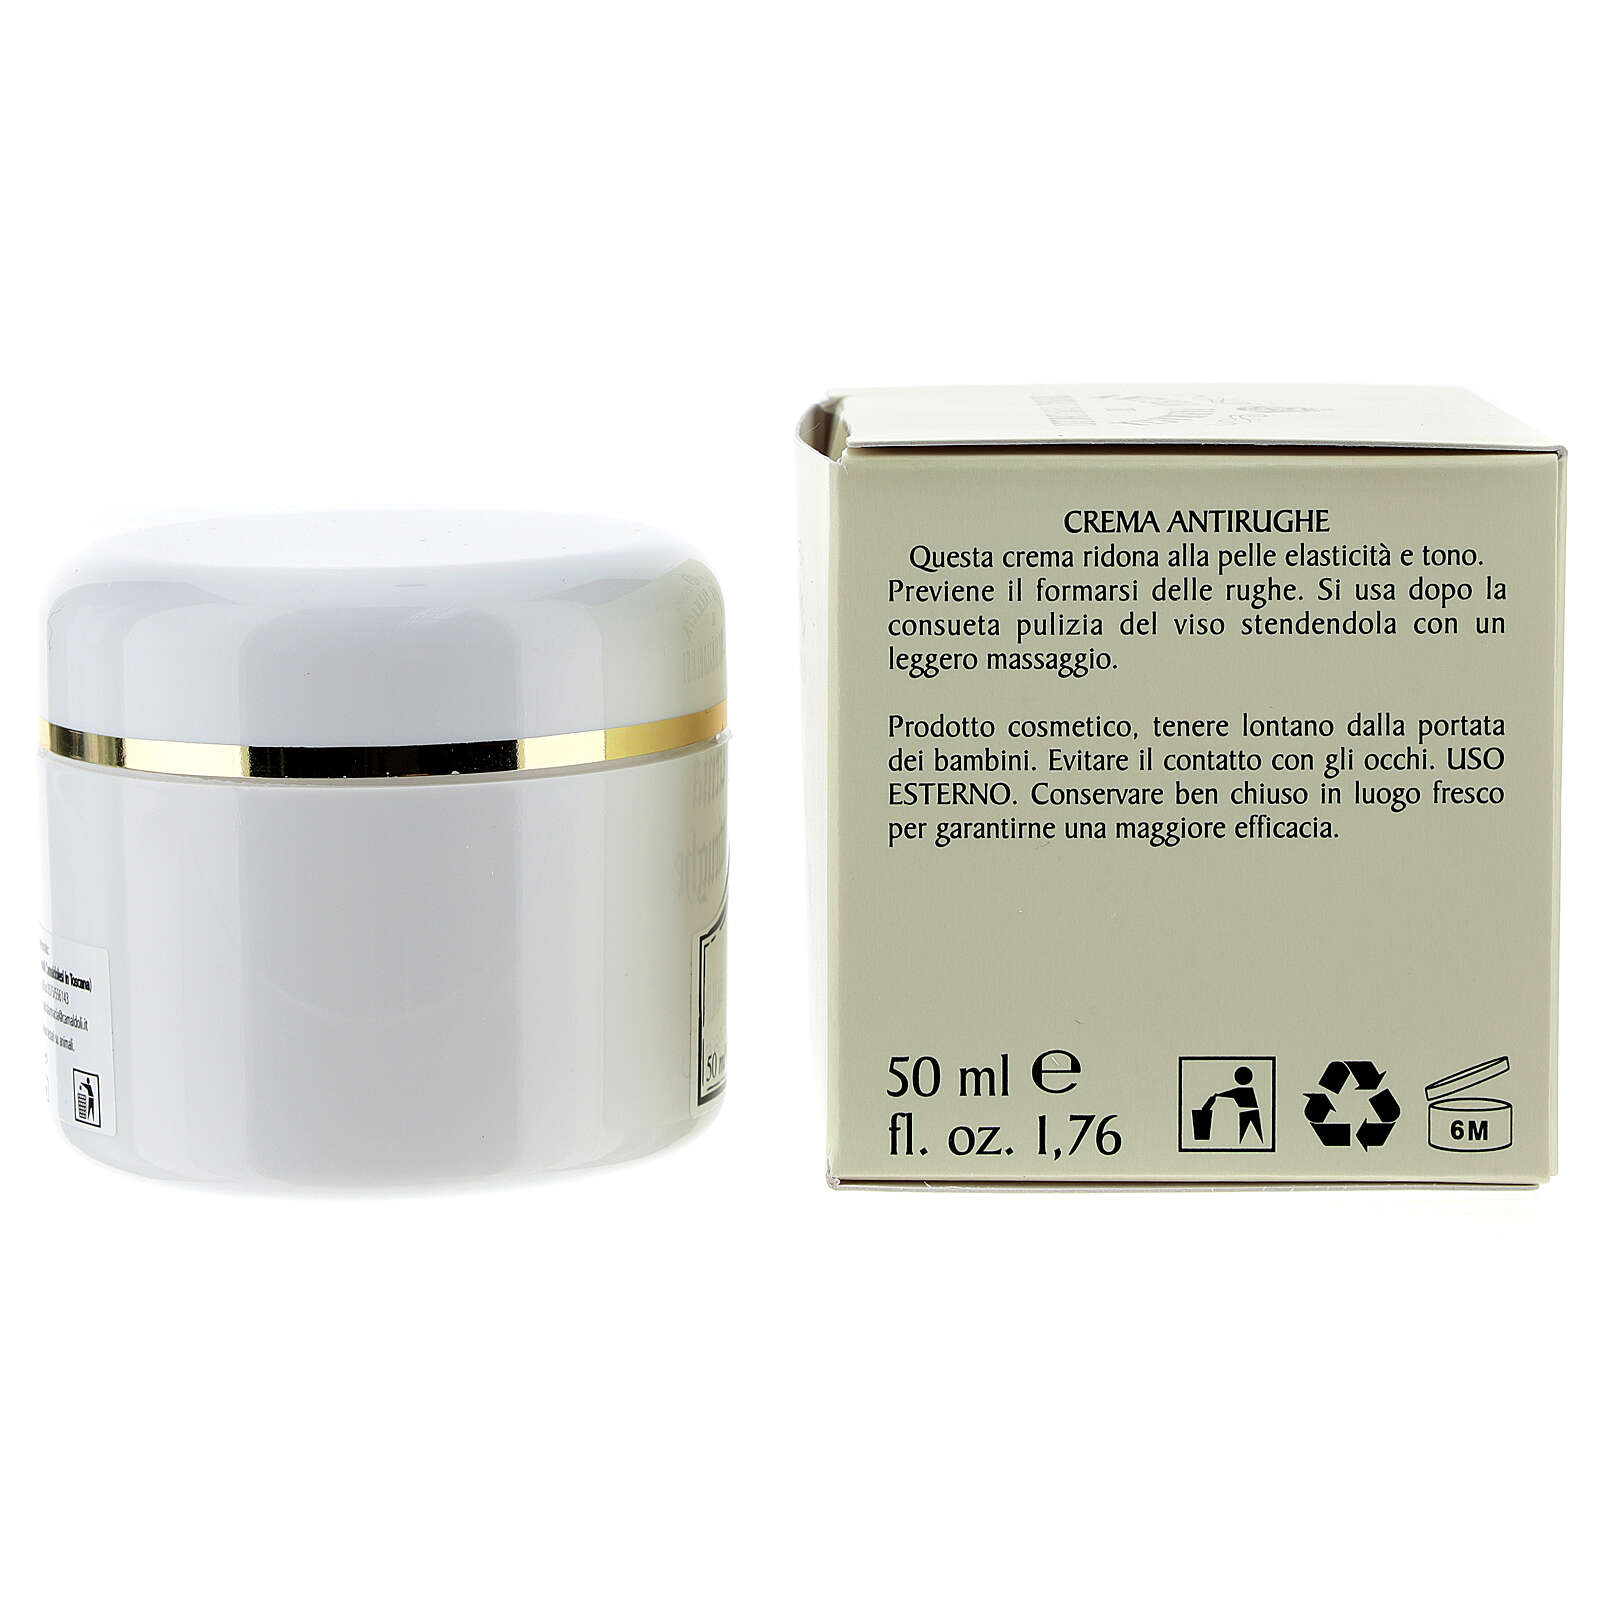 Creme anti-rugas Camaldoli 50 ml 4